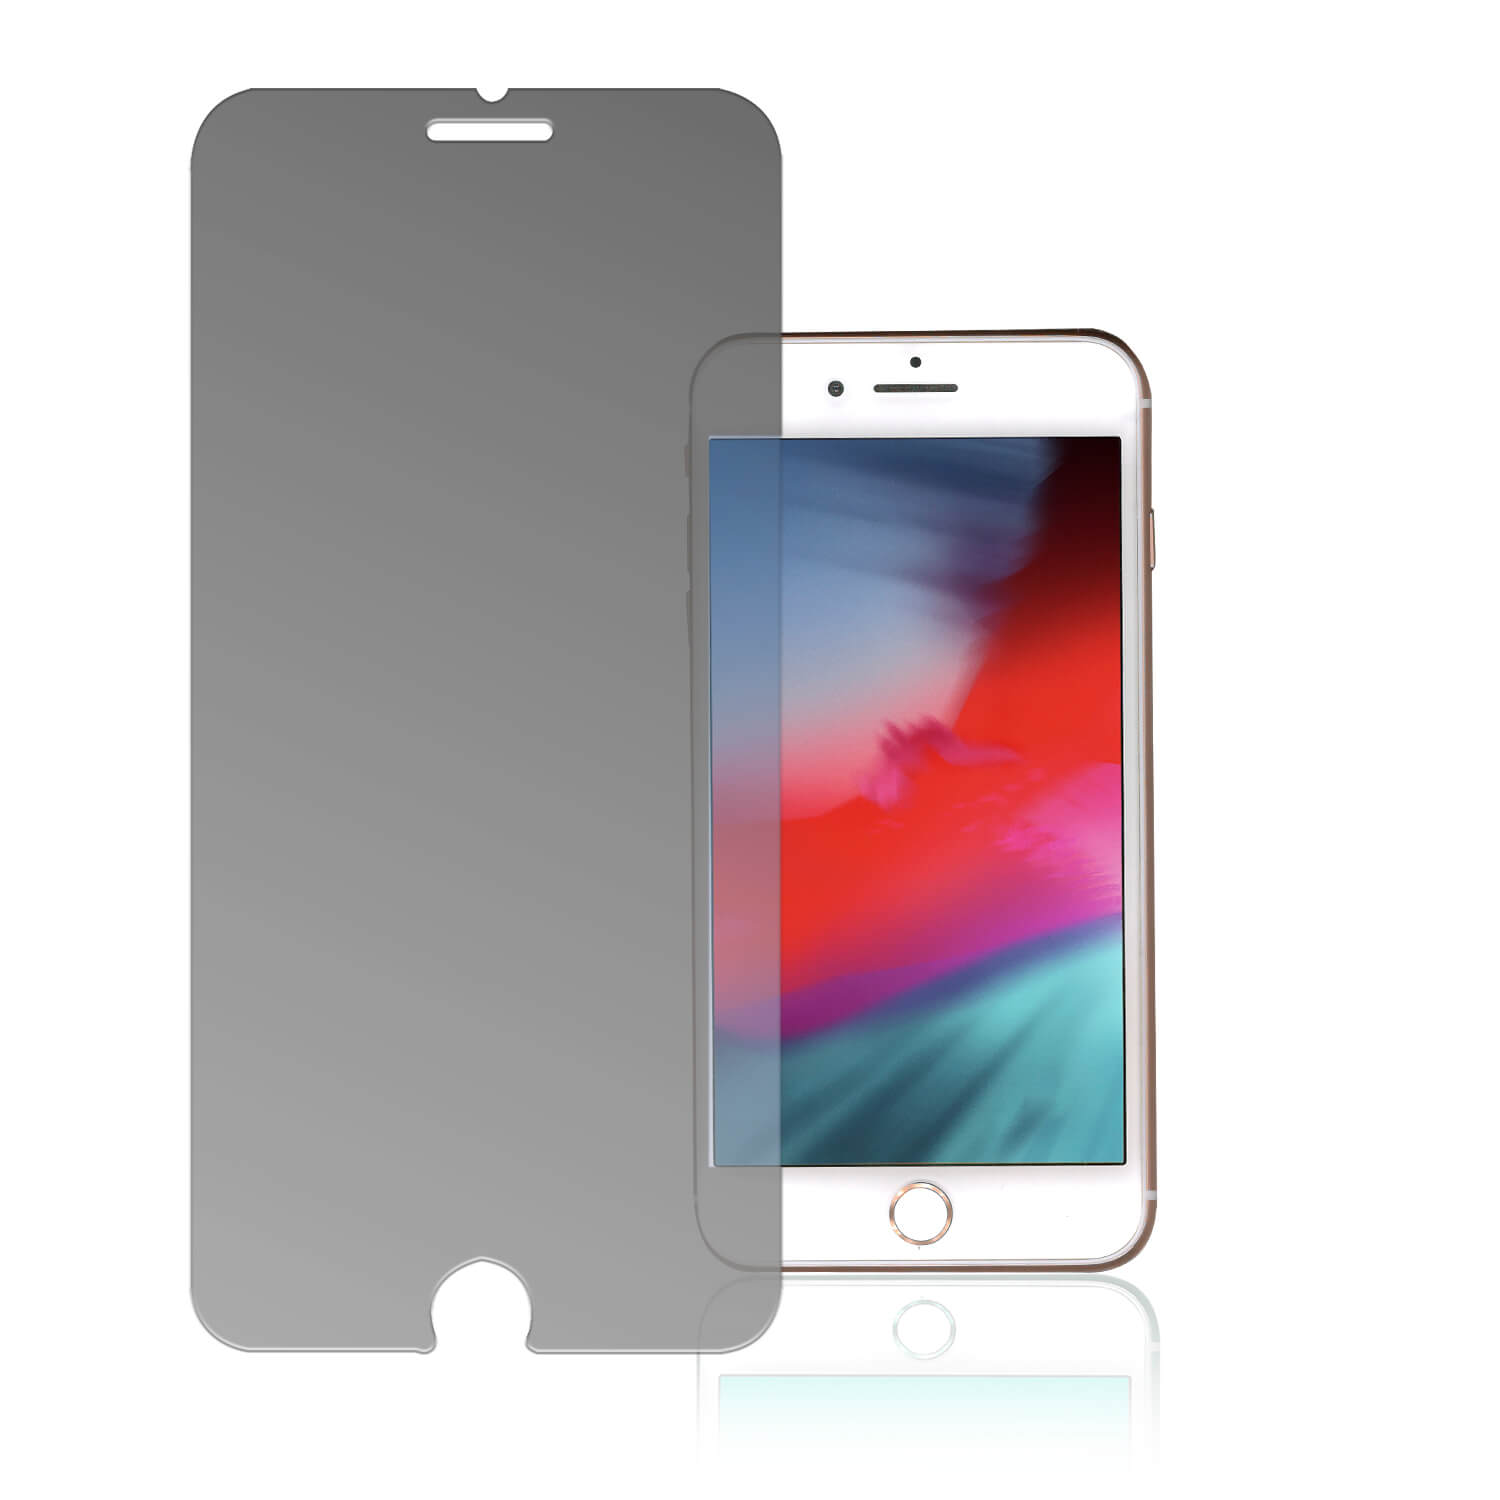 4smarts Second Glass Privacy Pro 4Way Anti-Spy for iPhone iPhone 8, iPhone 7